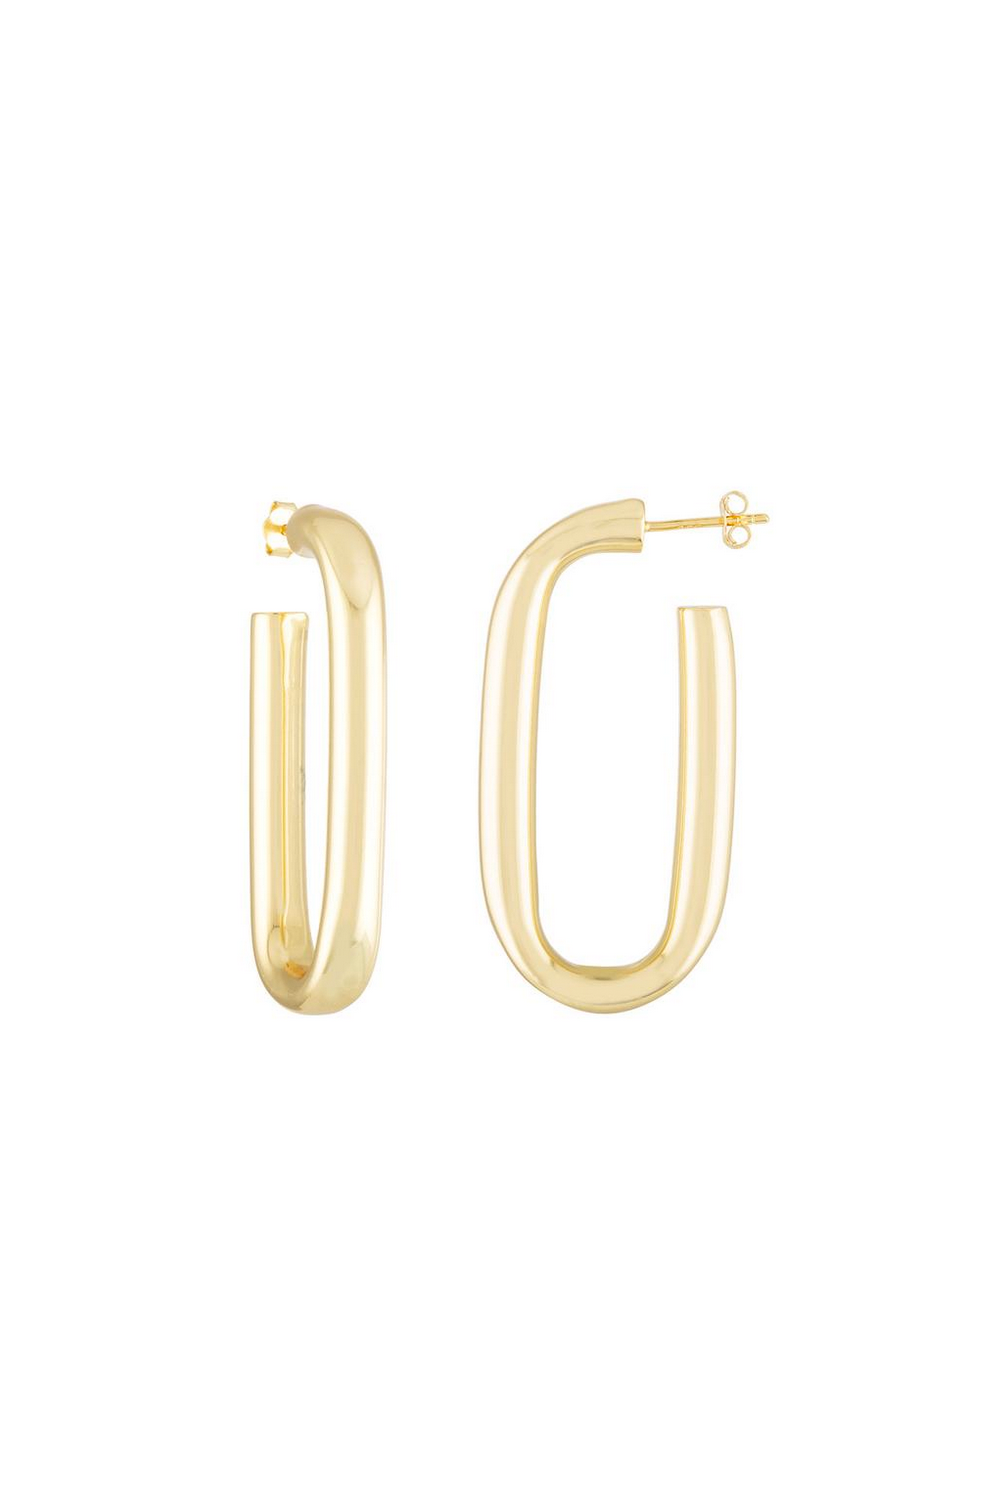 Machete Maya Earrings in 14k Gold